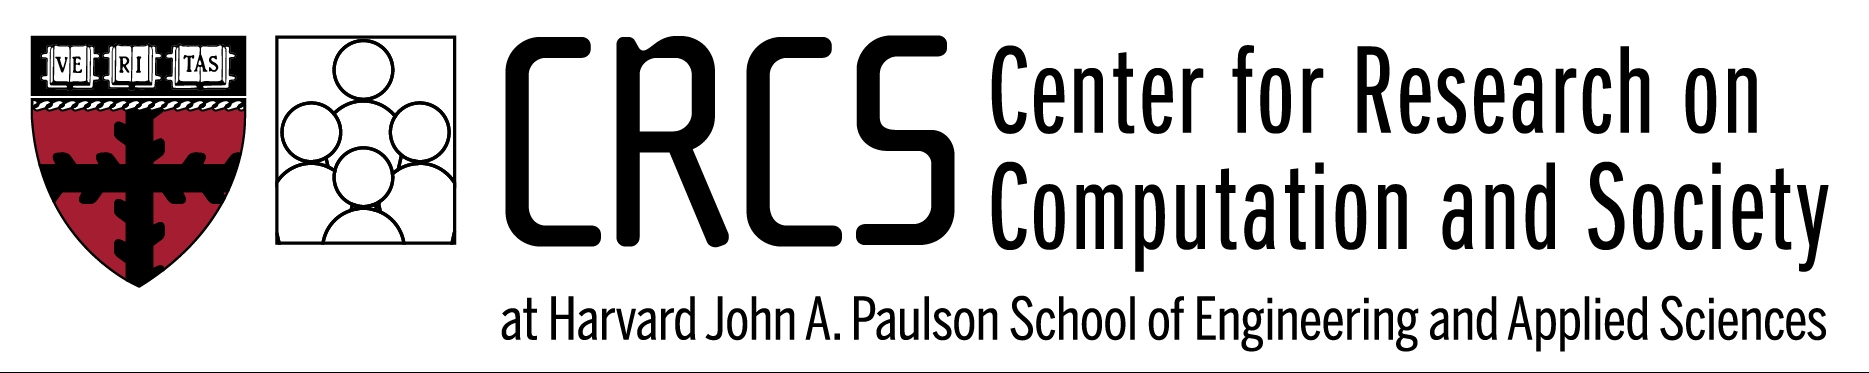 CRCS | Center for Research on Computation and Society